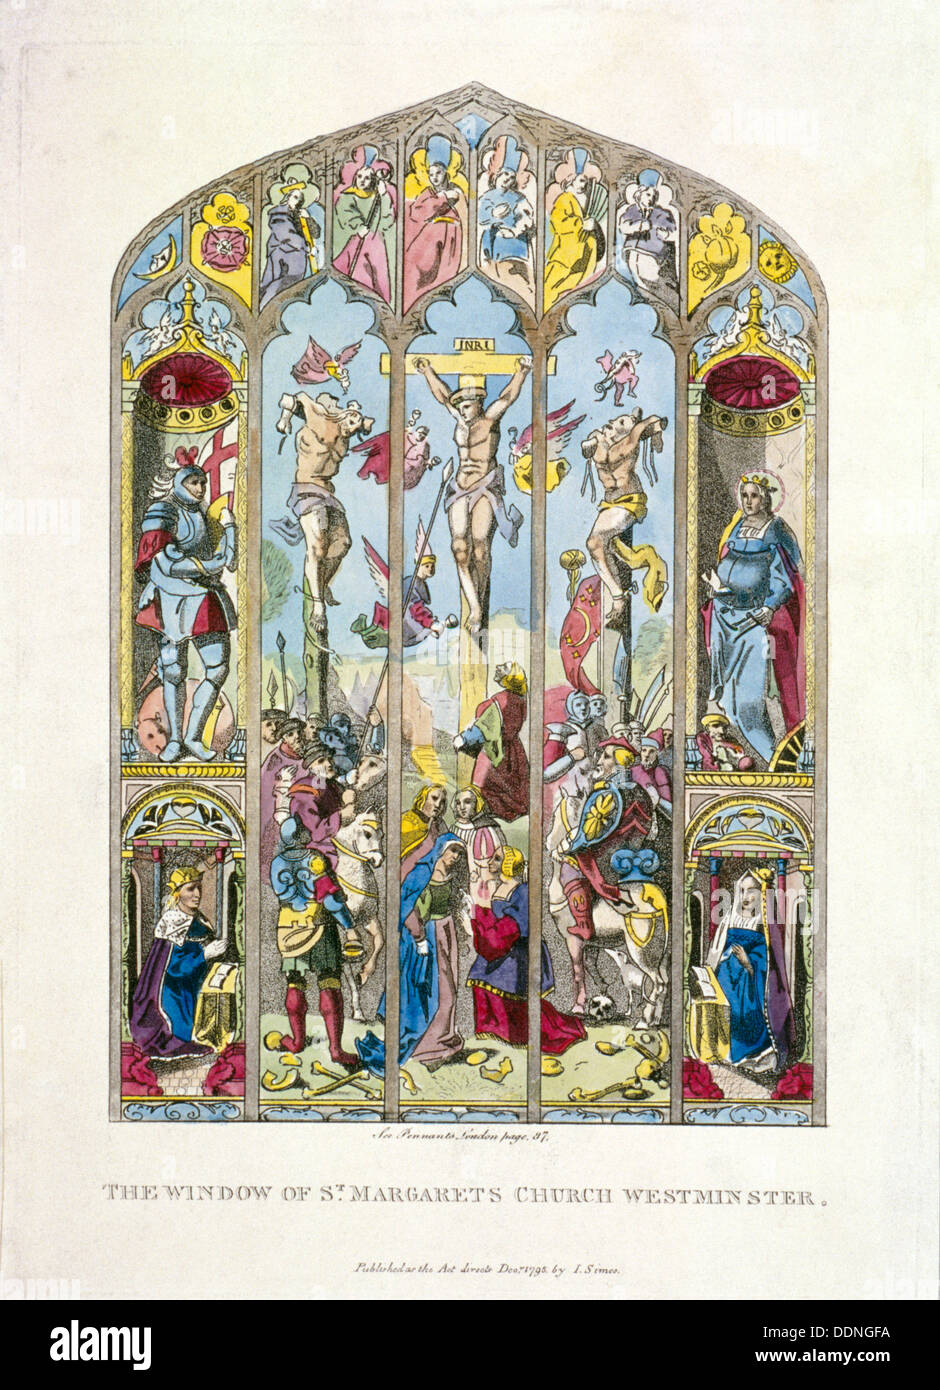 East window in St Margaret, Westminster, depicting the crucifixion, London, 1795. Artist: Anon - Stock Image